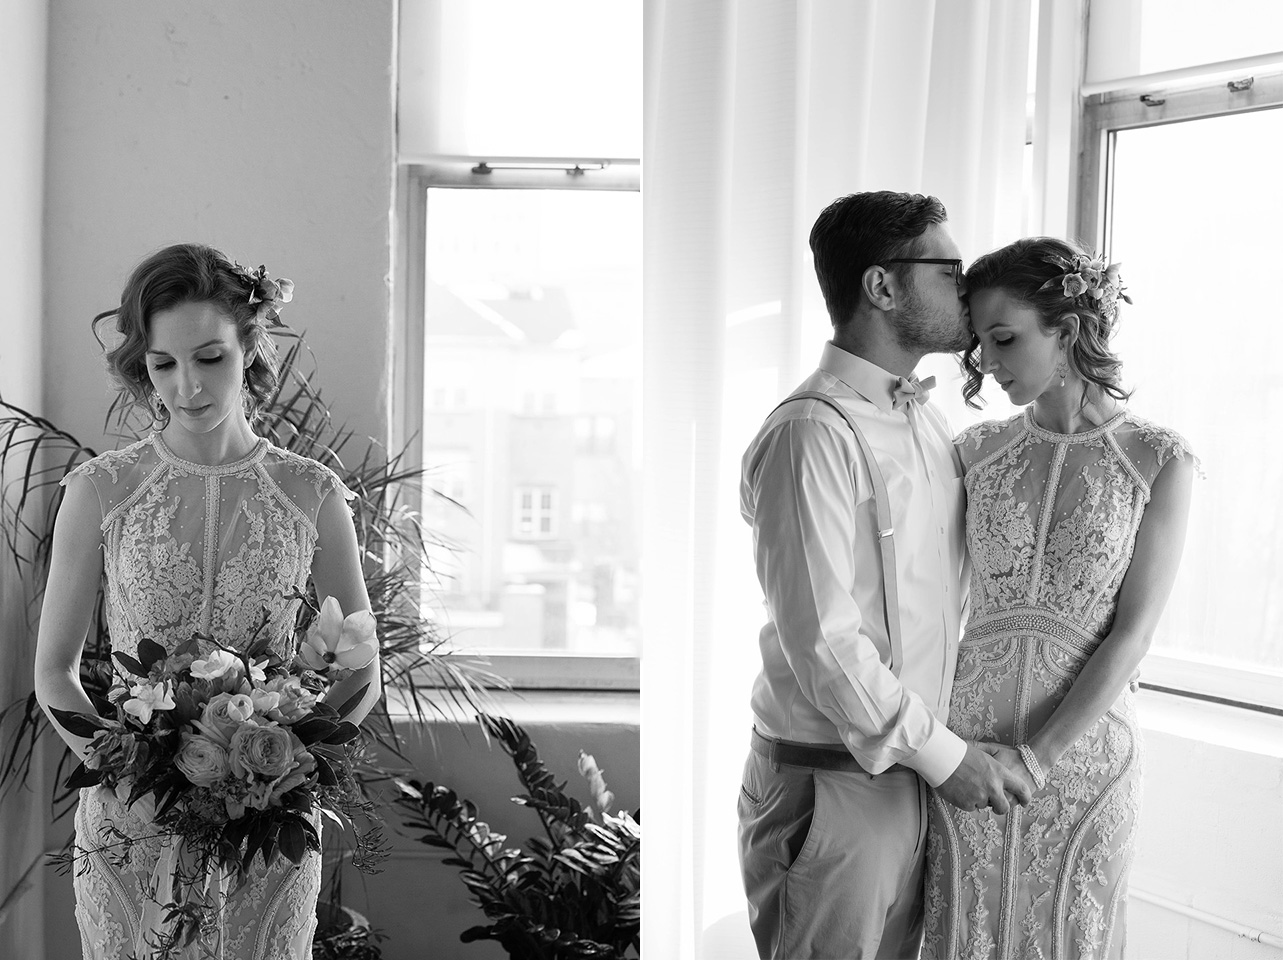 Bride and Groom photos, Arbor Loft Styled Wedding Shoot, Rochester Wedding Photographer, Mischief and Laughs Photography